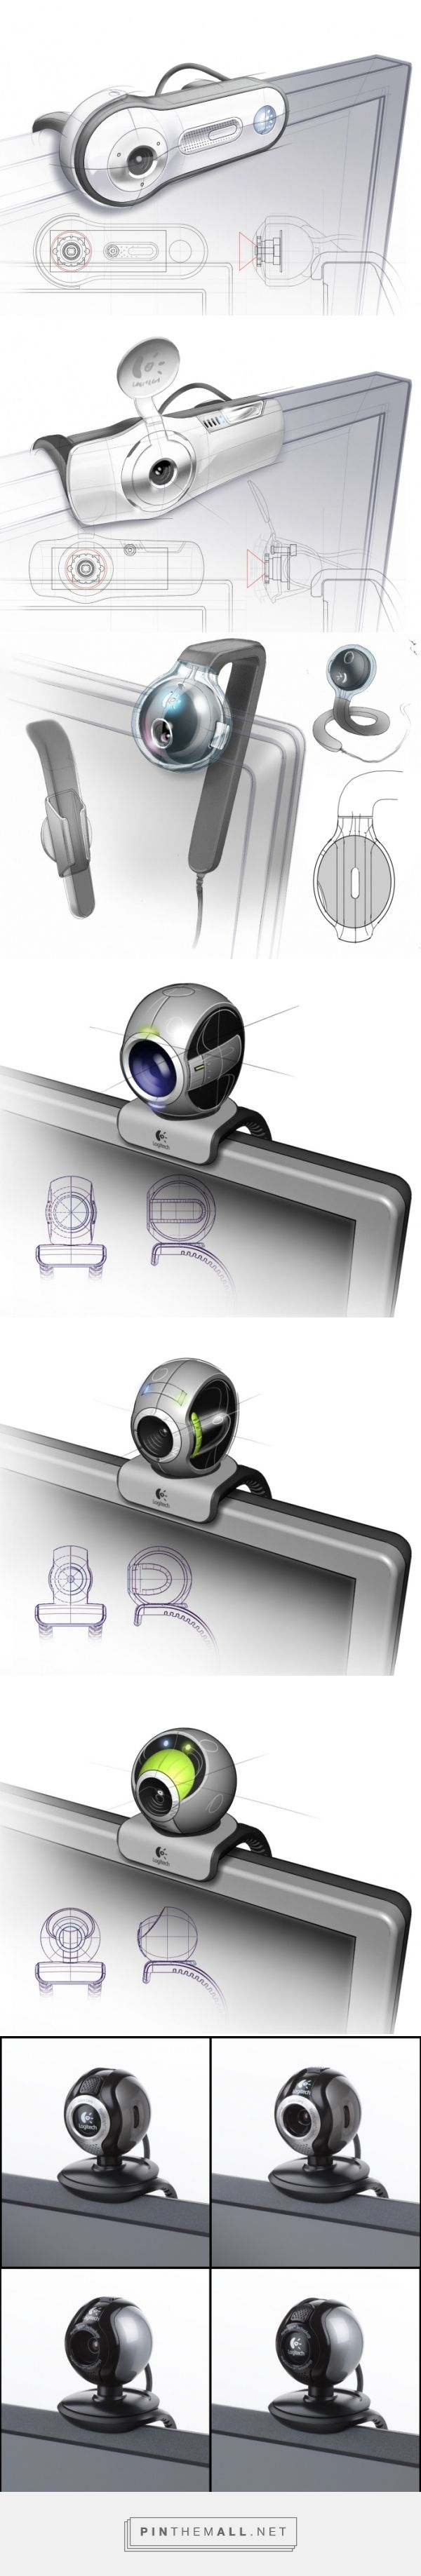 Logitech Webcams by Andy Logan at Coroflot.com - created via http://pinthemall.net